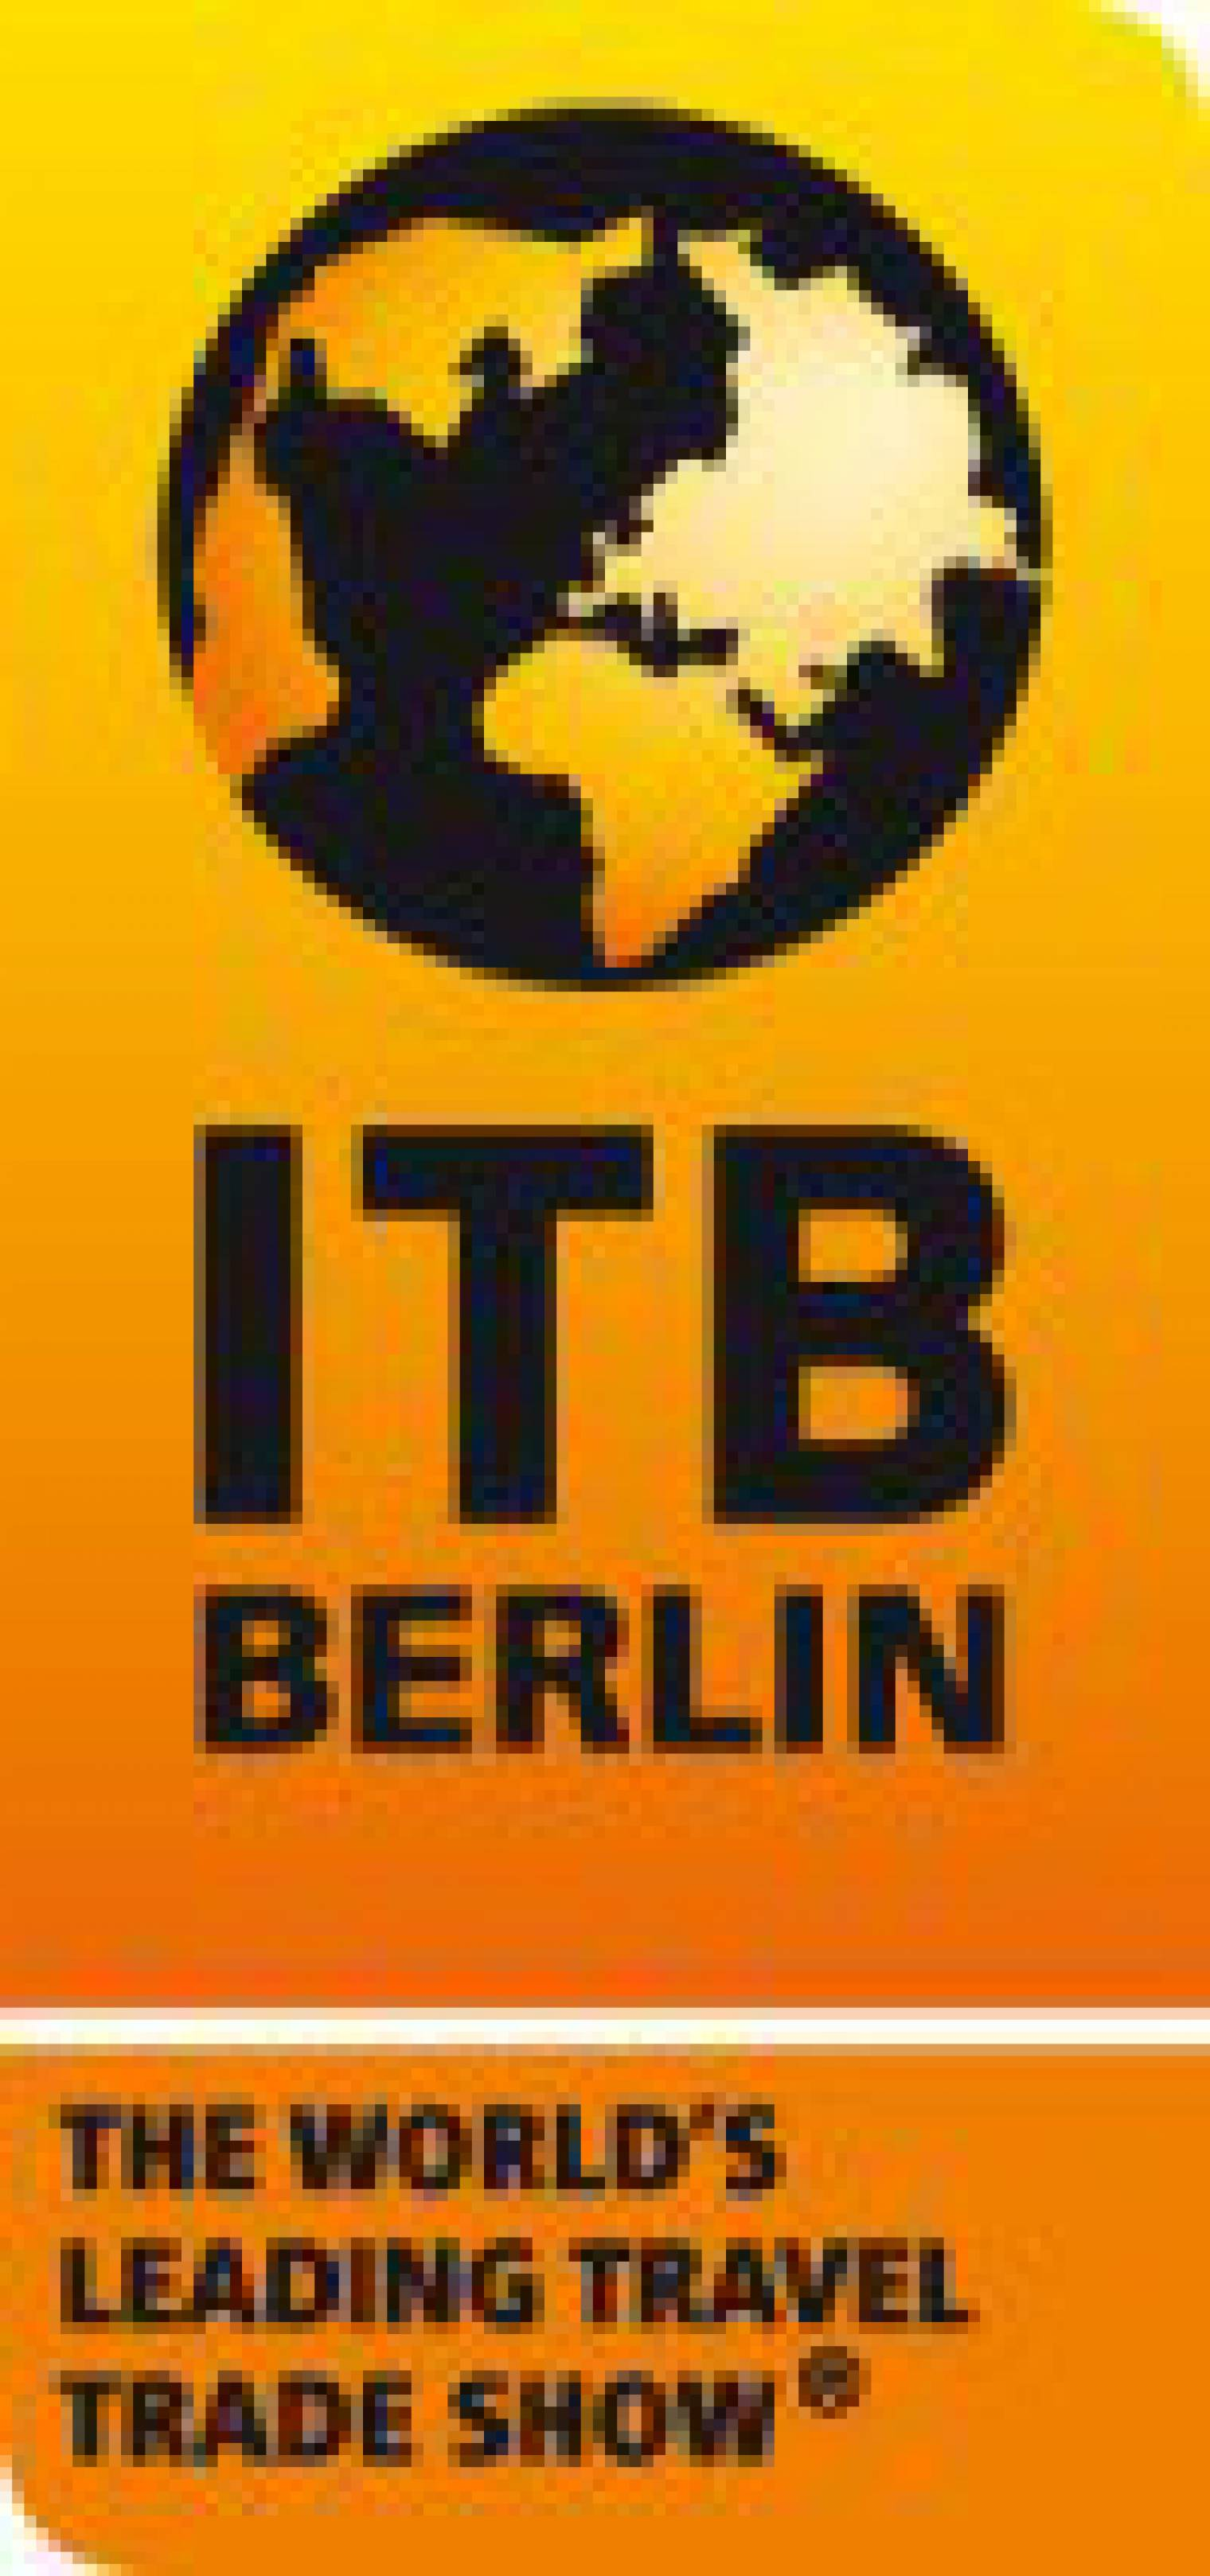 Join WYSE Travel Confederation at ITB Berlin 2014